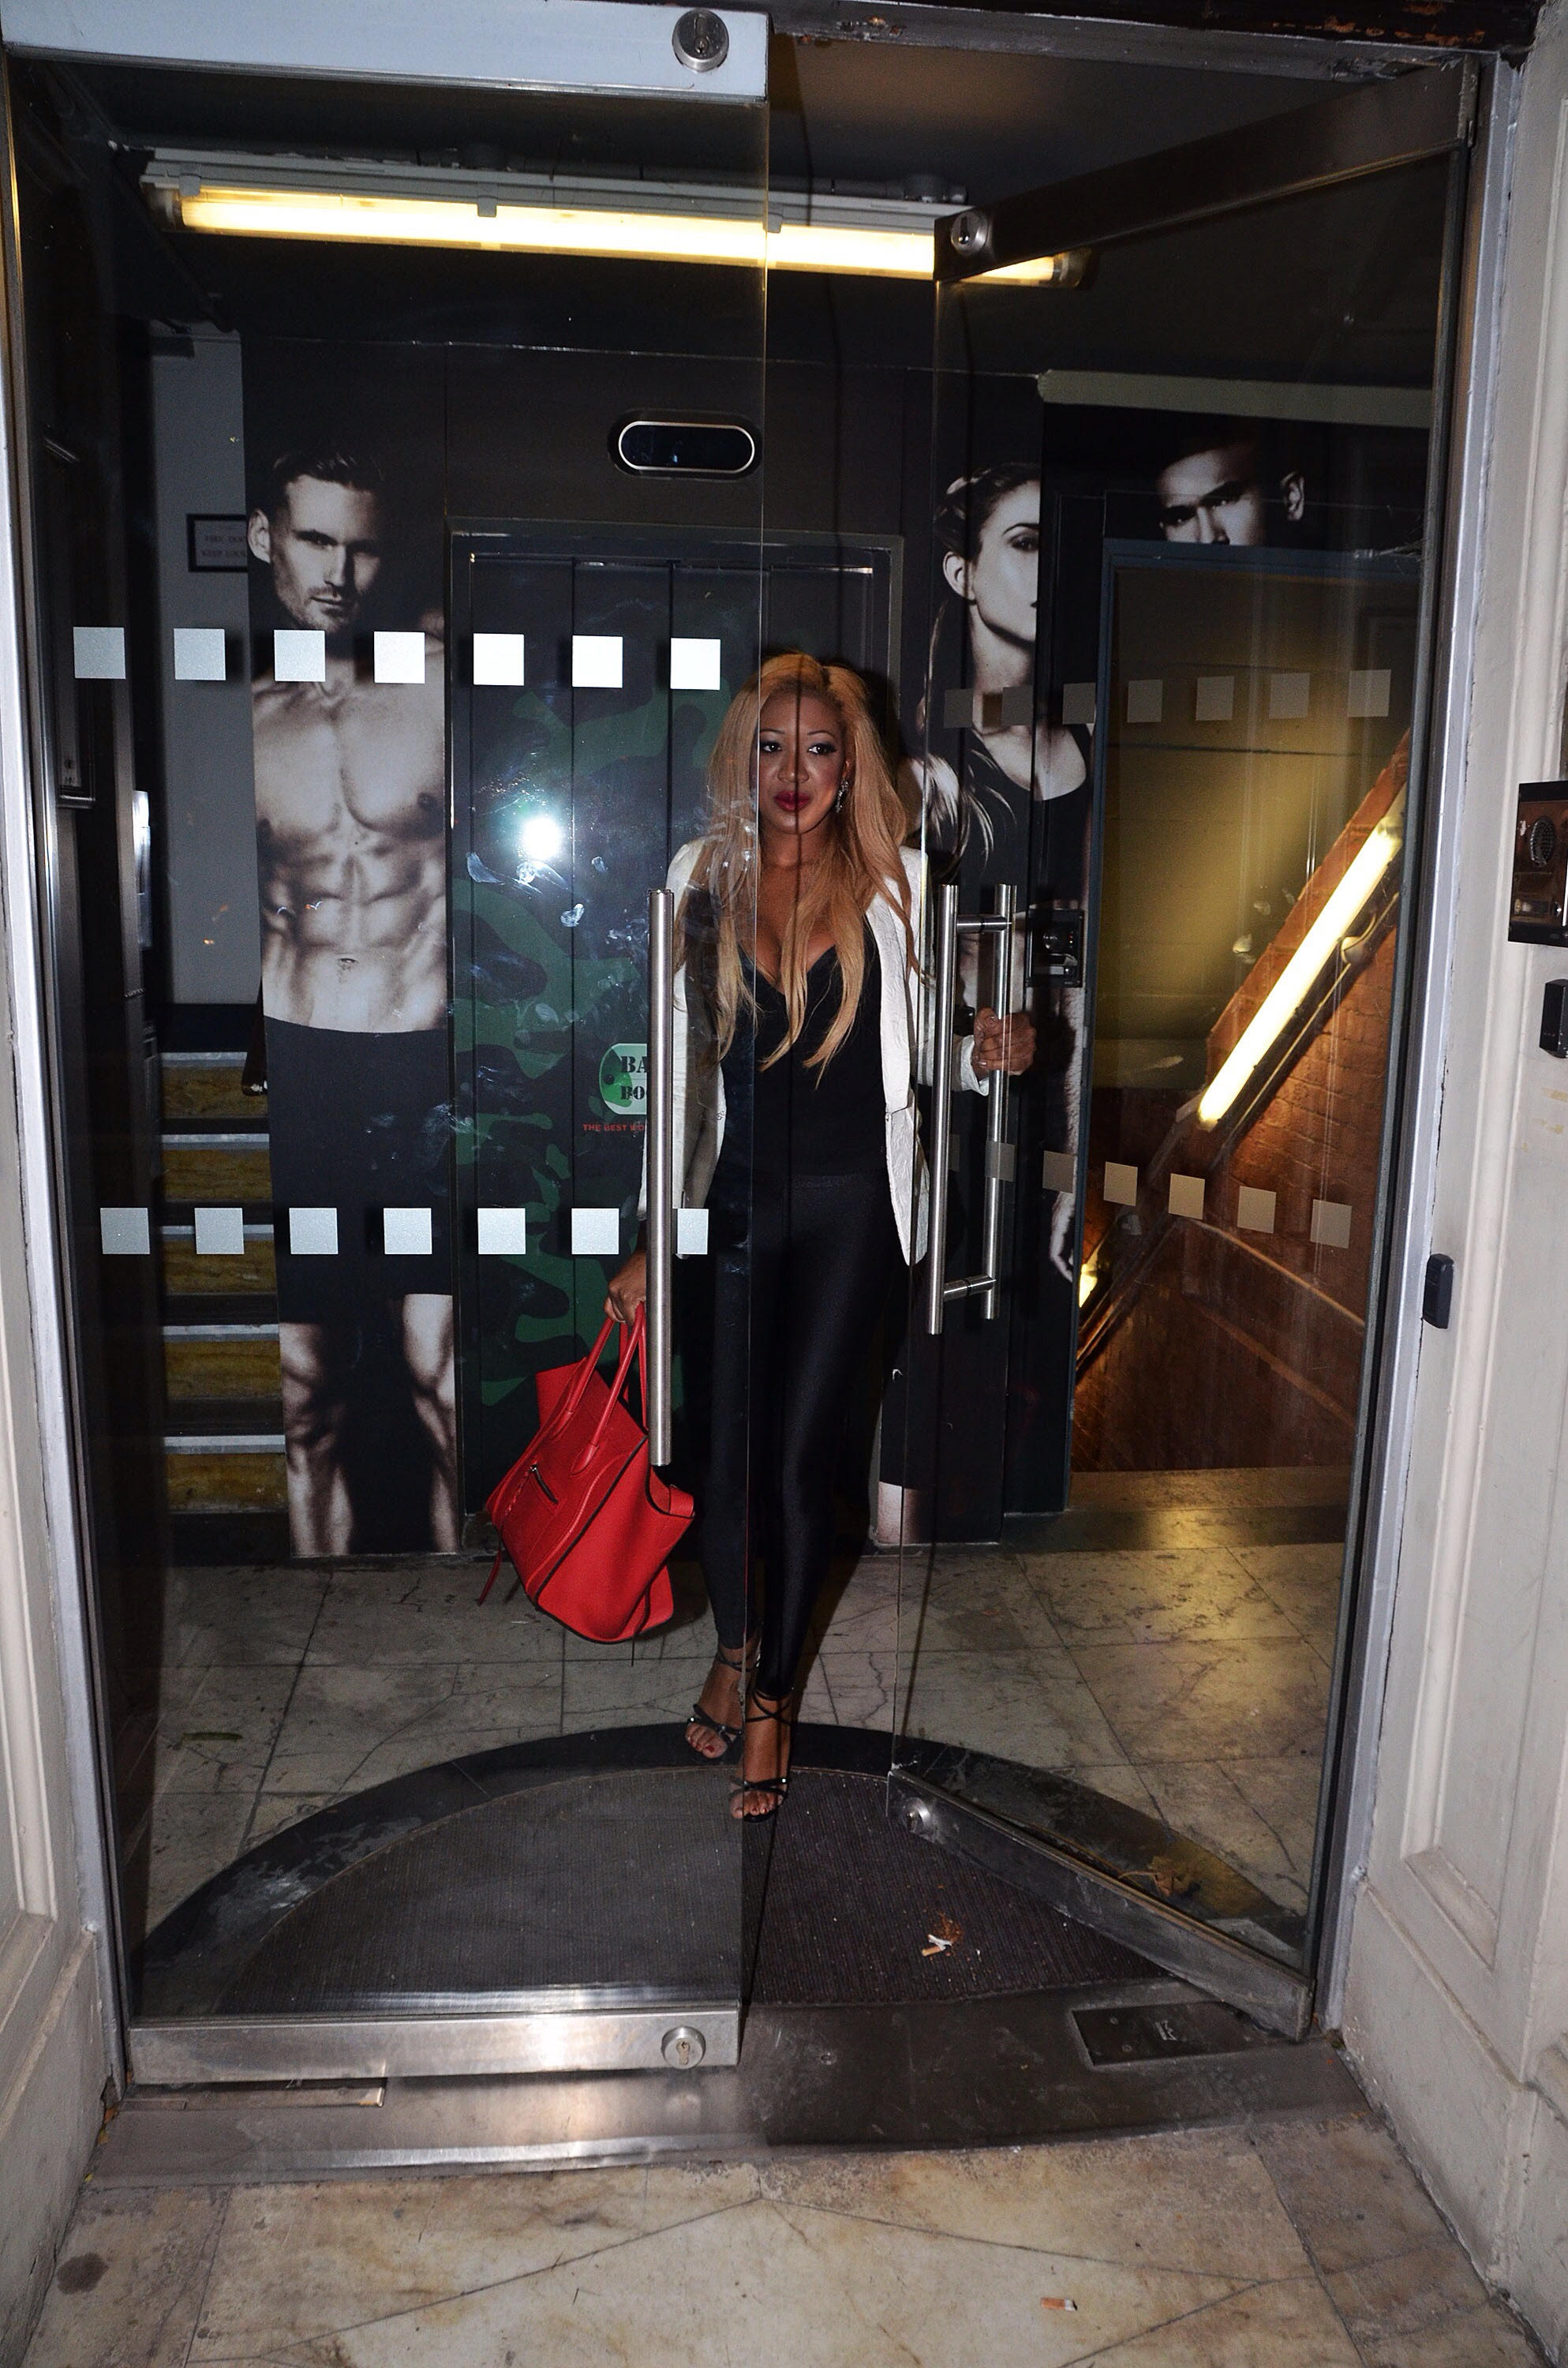 barrys bootcamp + celine red bag + gina rio + georgina rio + hot + body + big brother + uk + style + outfit + blogger + vlogger + london.jpg